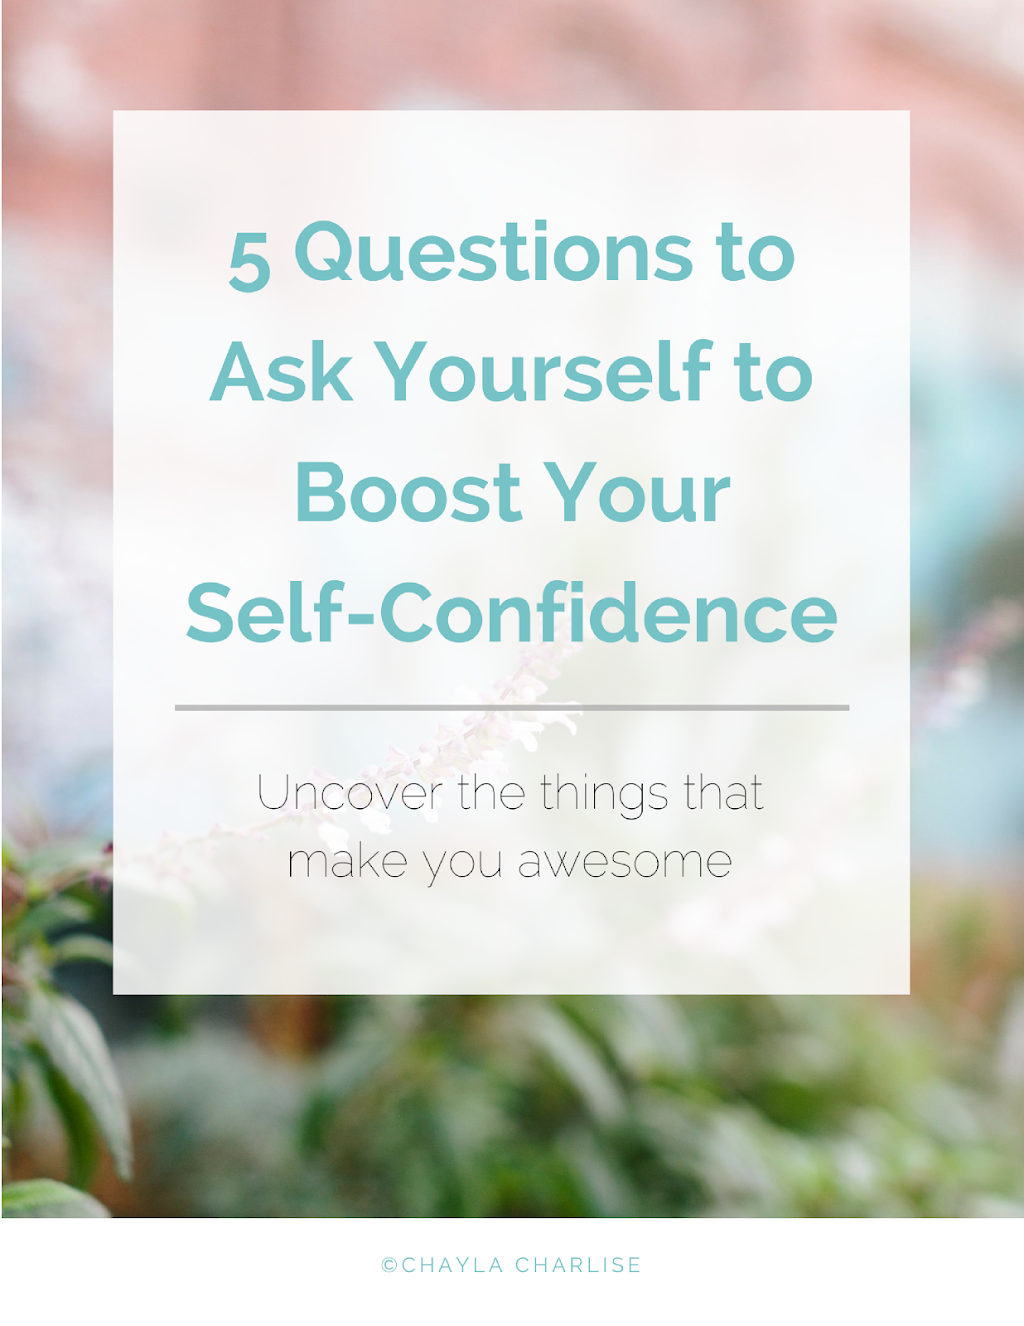 5 questions to ask to boost your self confidence